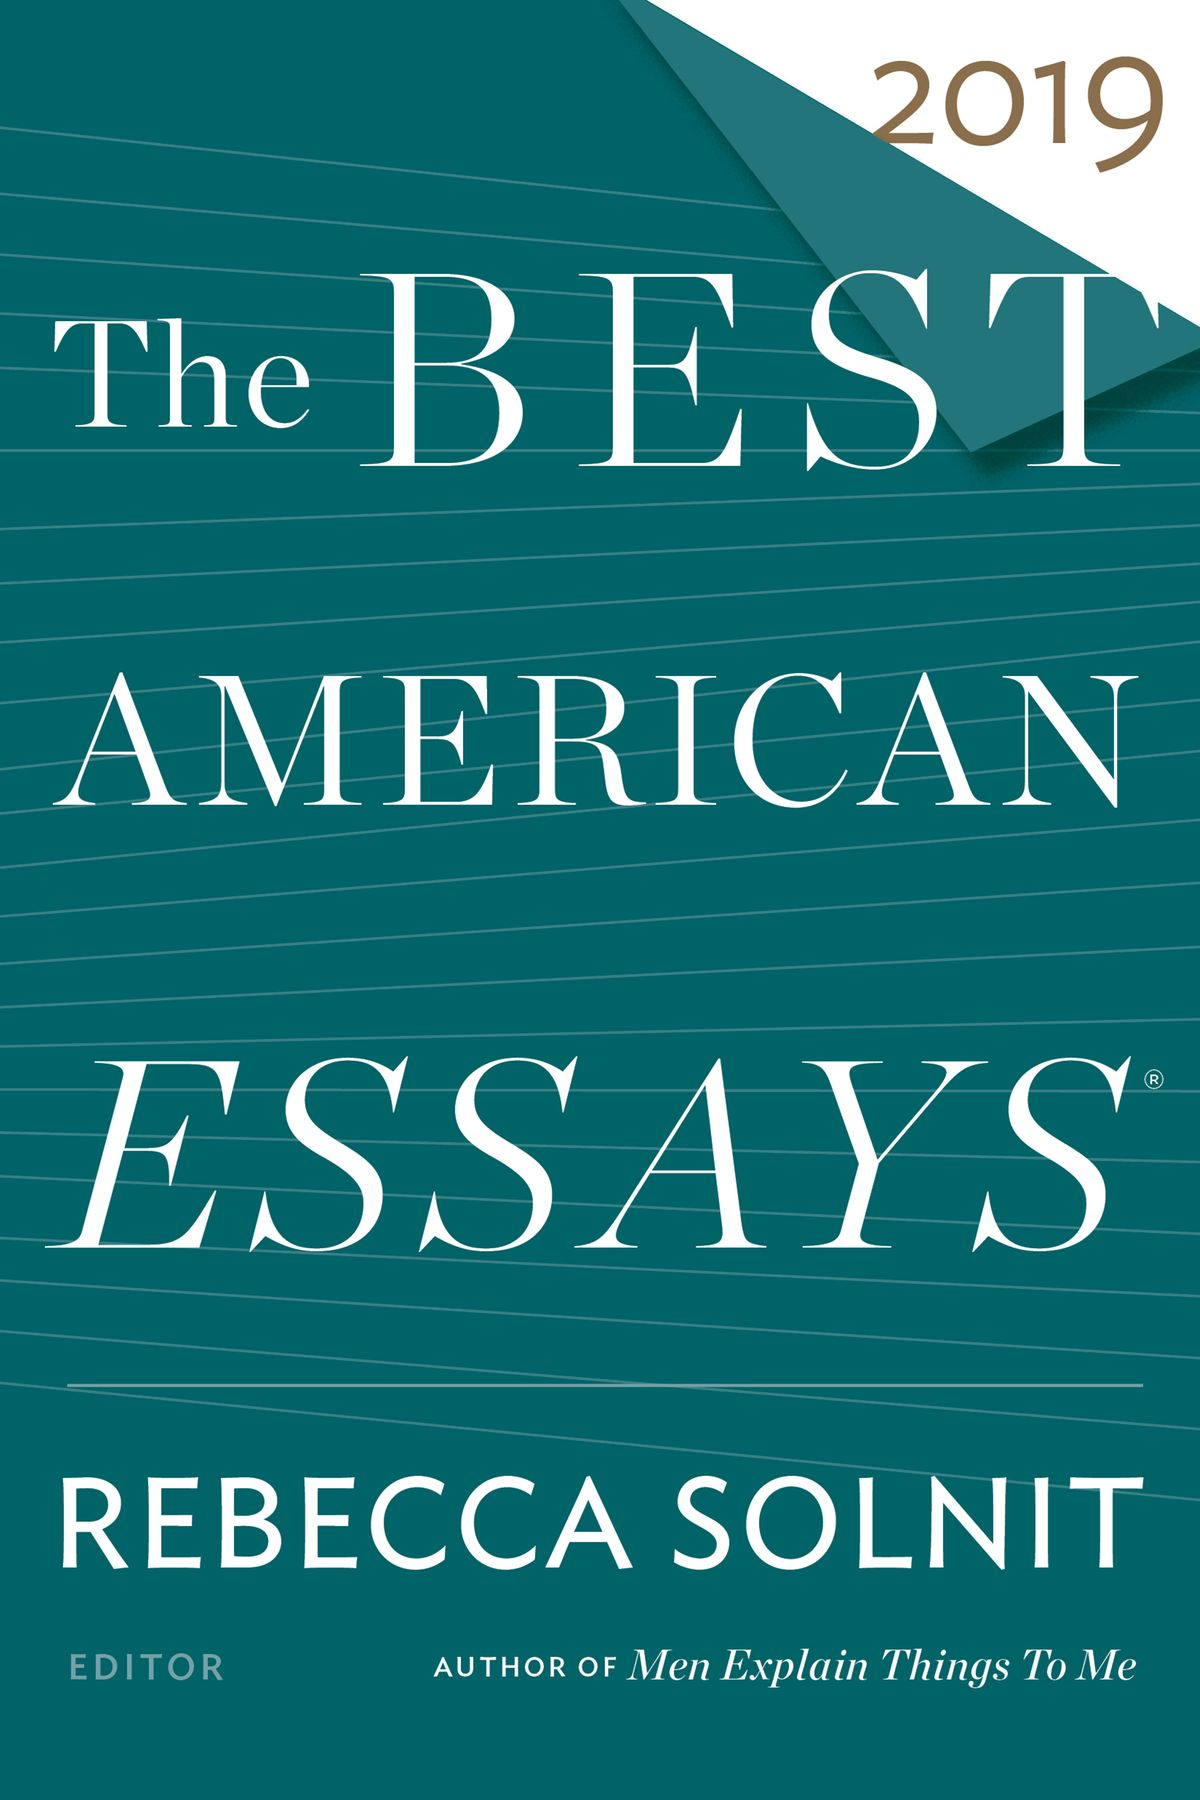 007 The Best American Essays Essay Wonderful 2018 List Pdf Download 2017 Free Full